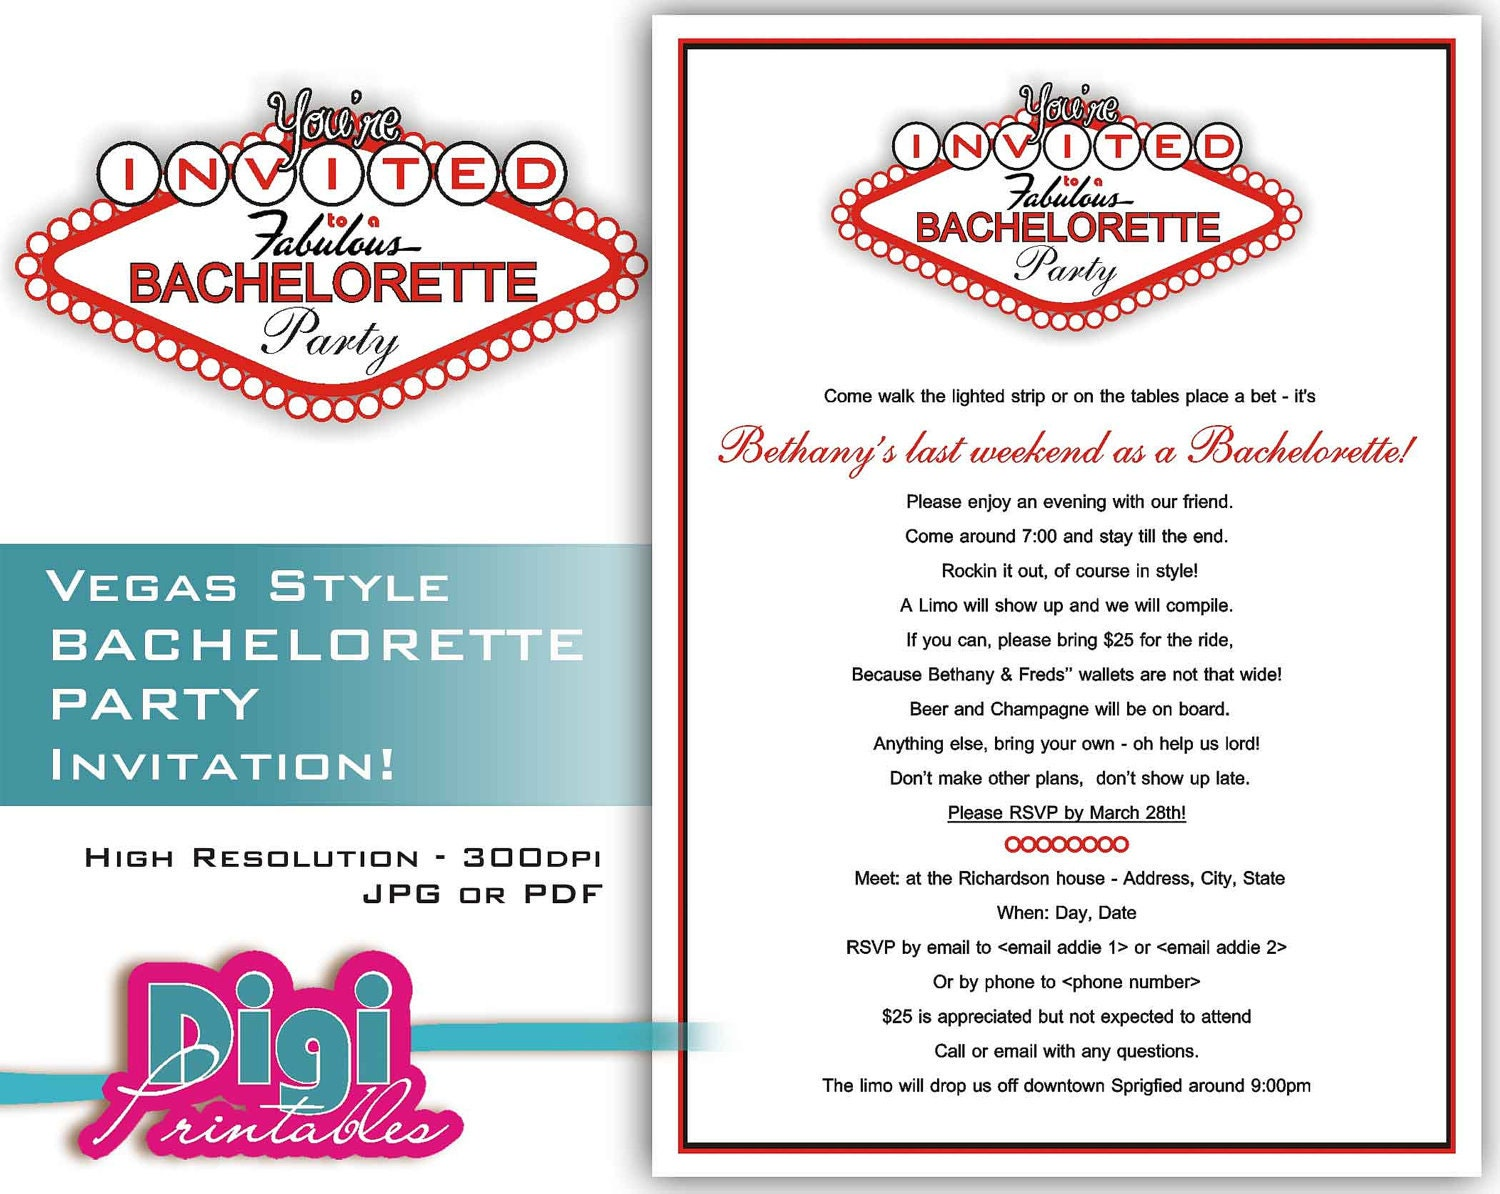 Bachelorette Party Invitation Las Vegas Digital Download – Bachelor Party Email Invite